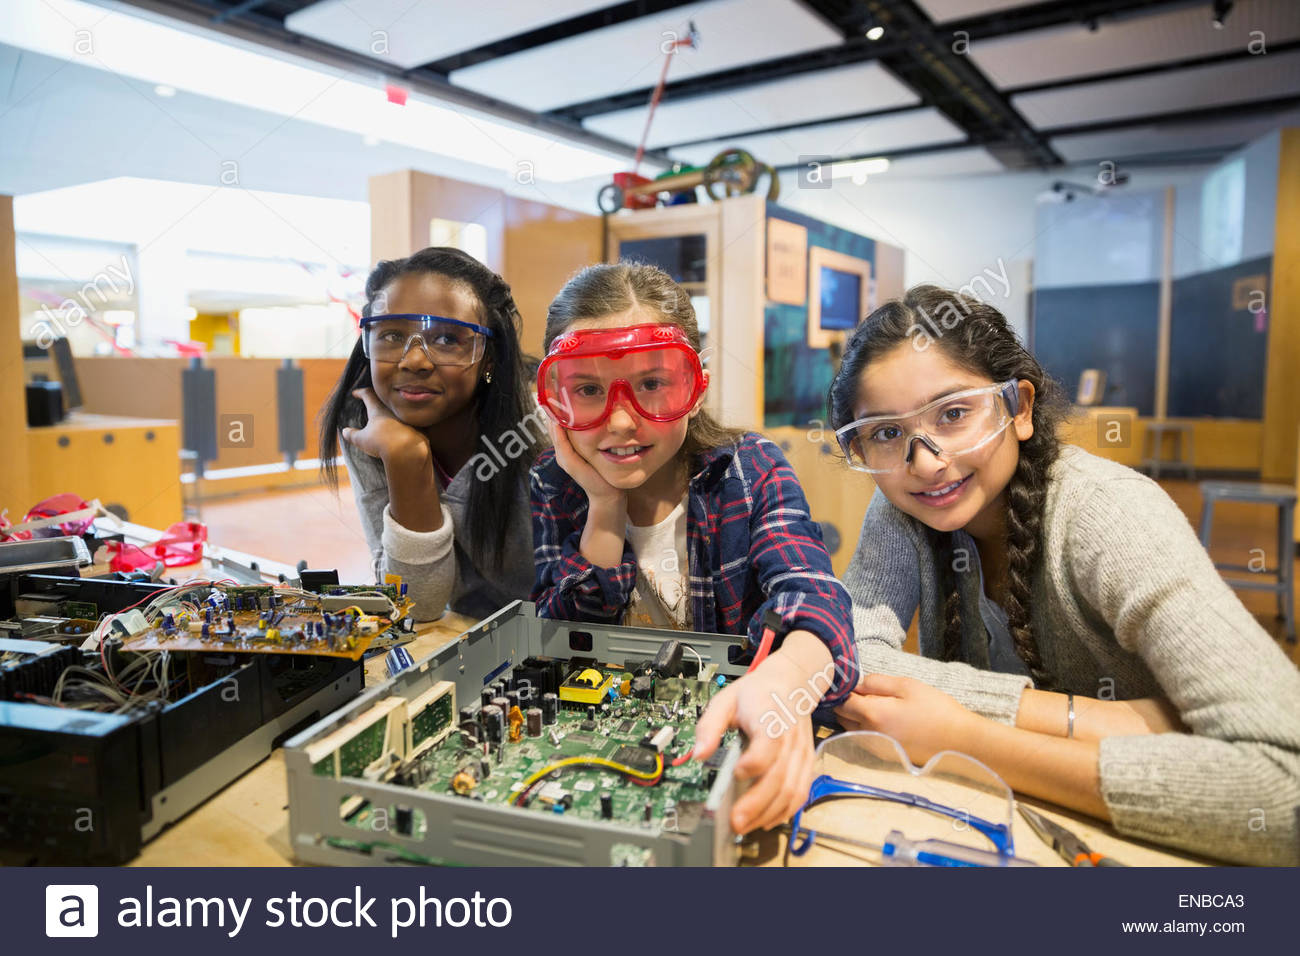 Portrait of girls goggles assembling electronics science center - Stock Image